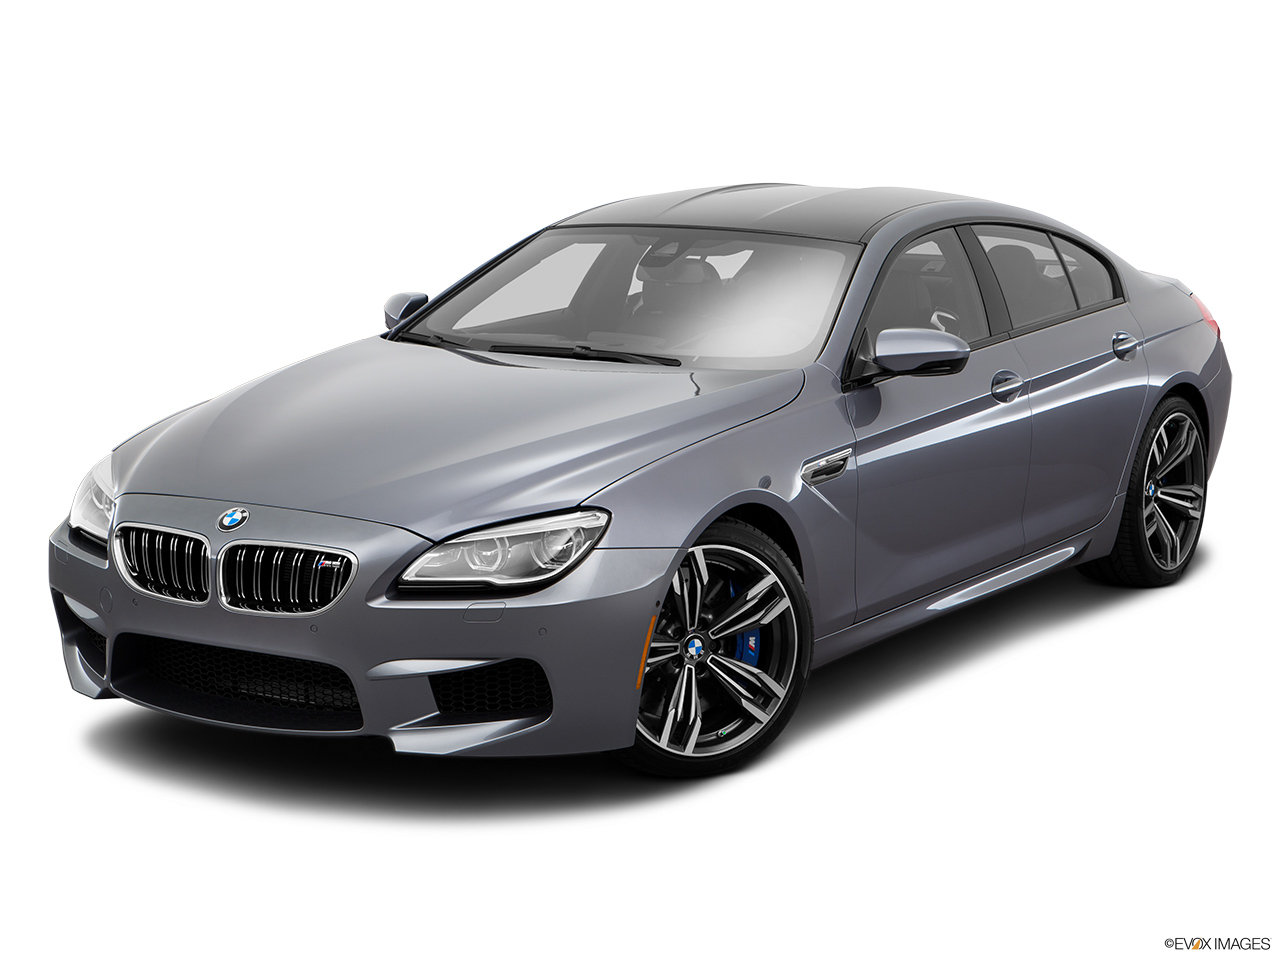 2018 bmw m6 gran coupe prices in qatar gulf specs. Black Bedroom Furniture Sets. Home Design Ideas